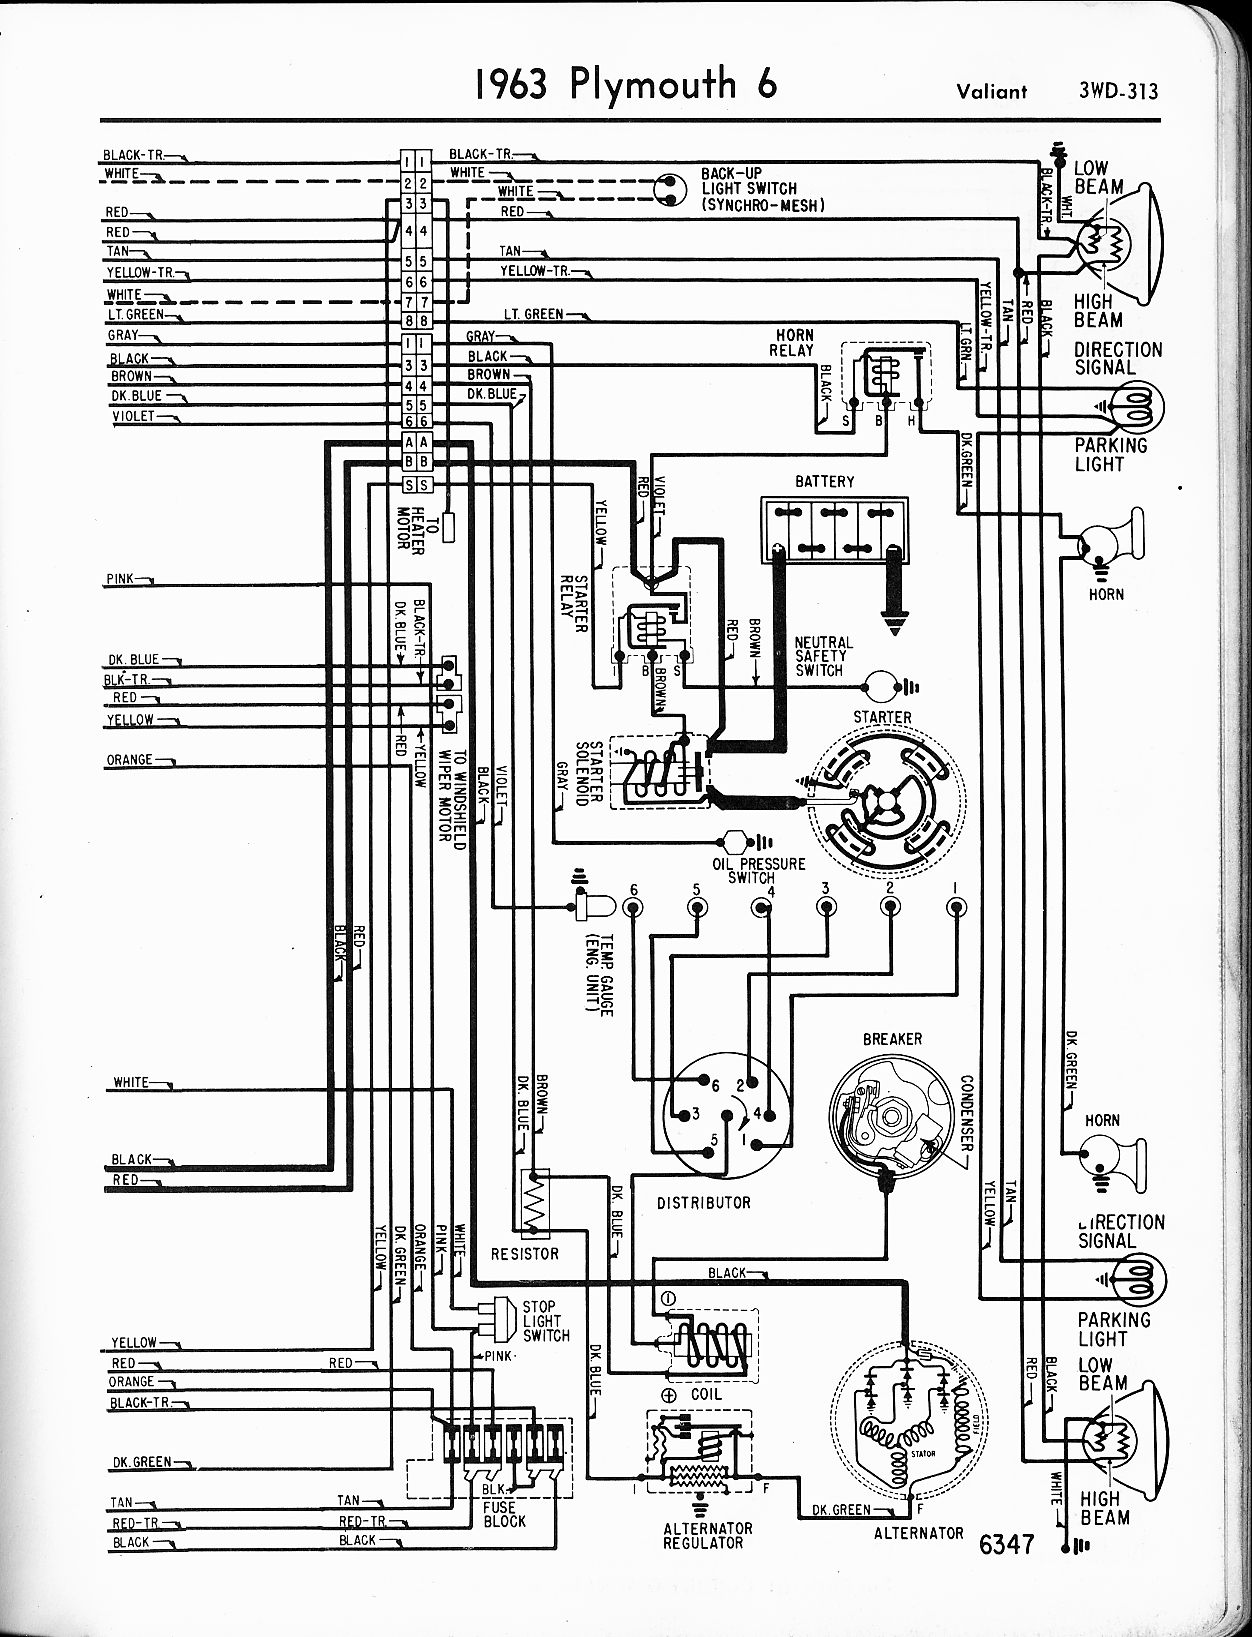 72 Charger Horn Relay Diagram Archive Of Automotive Wiring Lemans 1972 Plymouth Diagrams Box Rh Cad Fds Co Uk